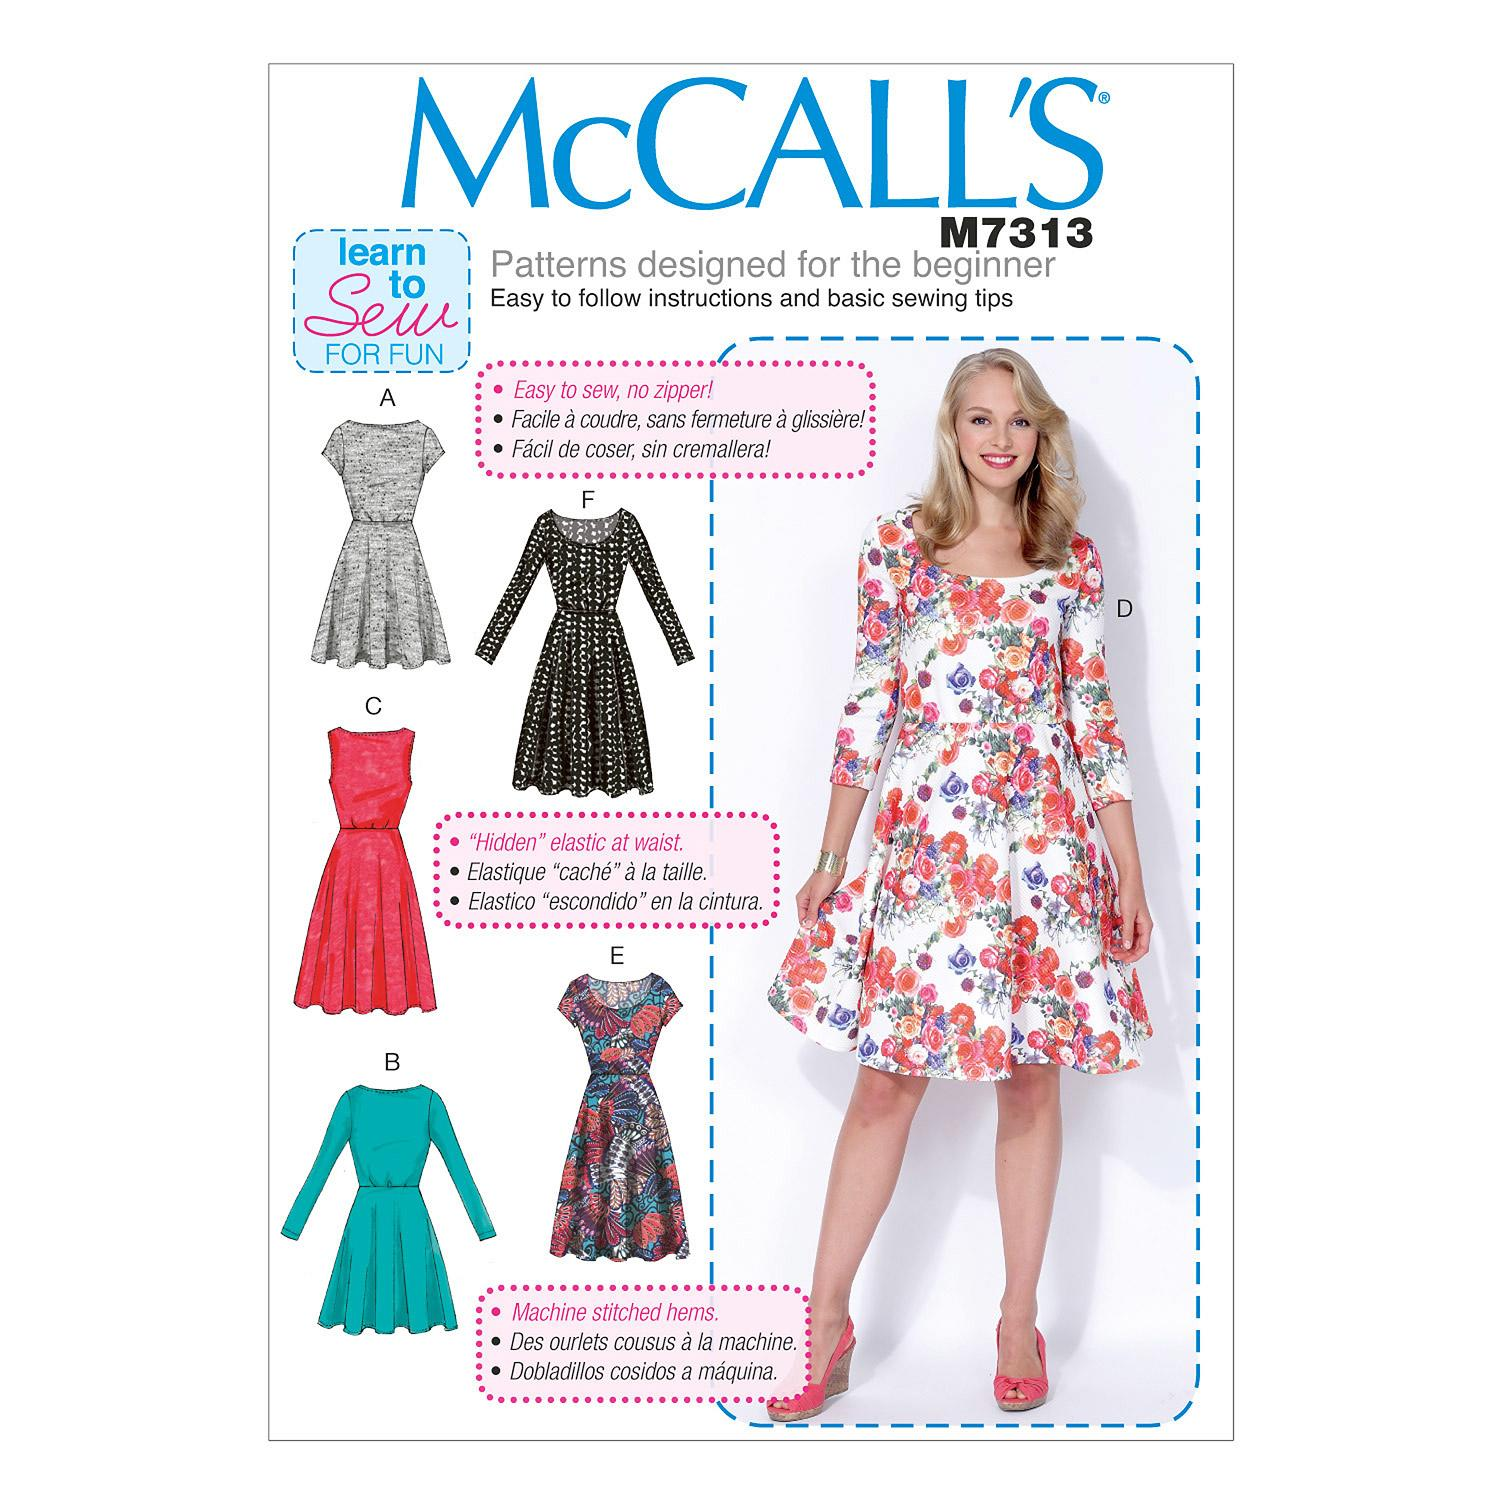 McCalls M7313 Dresses, Learn To Sew for Fun, Plus Size